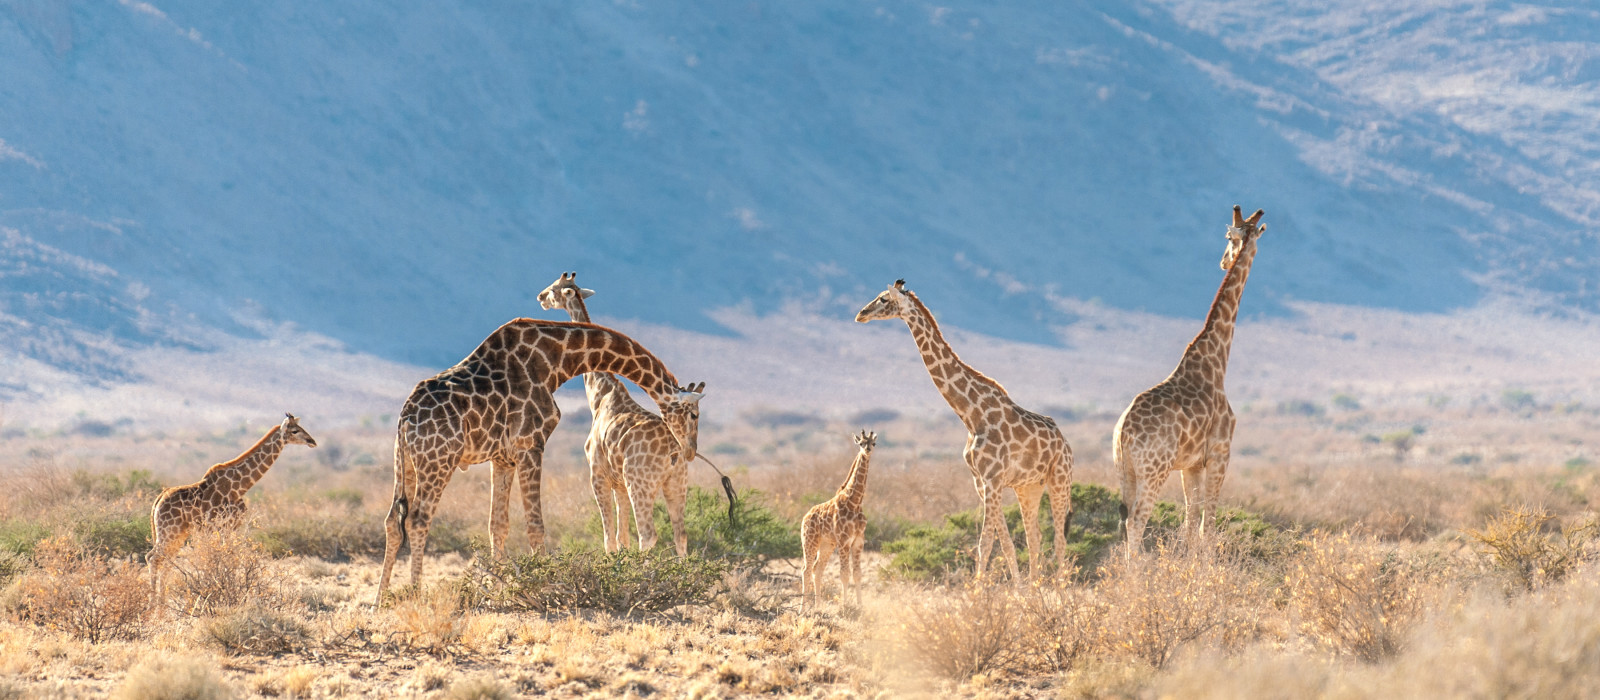 A group of Giraffes grazing in the desert of central Namibia. Hardap Region Namibia